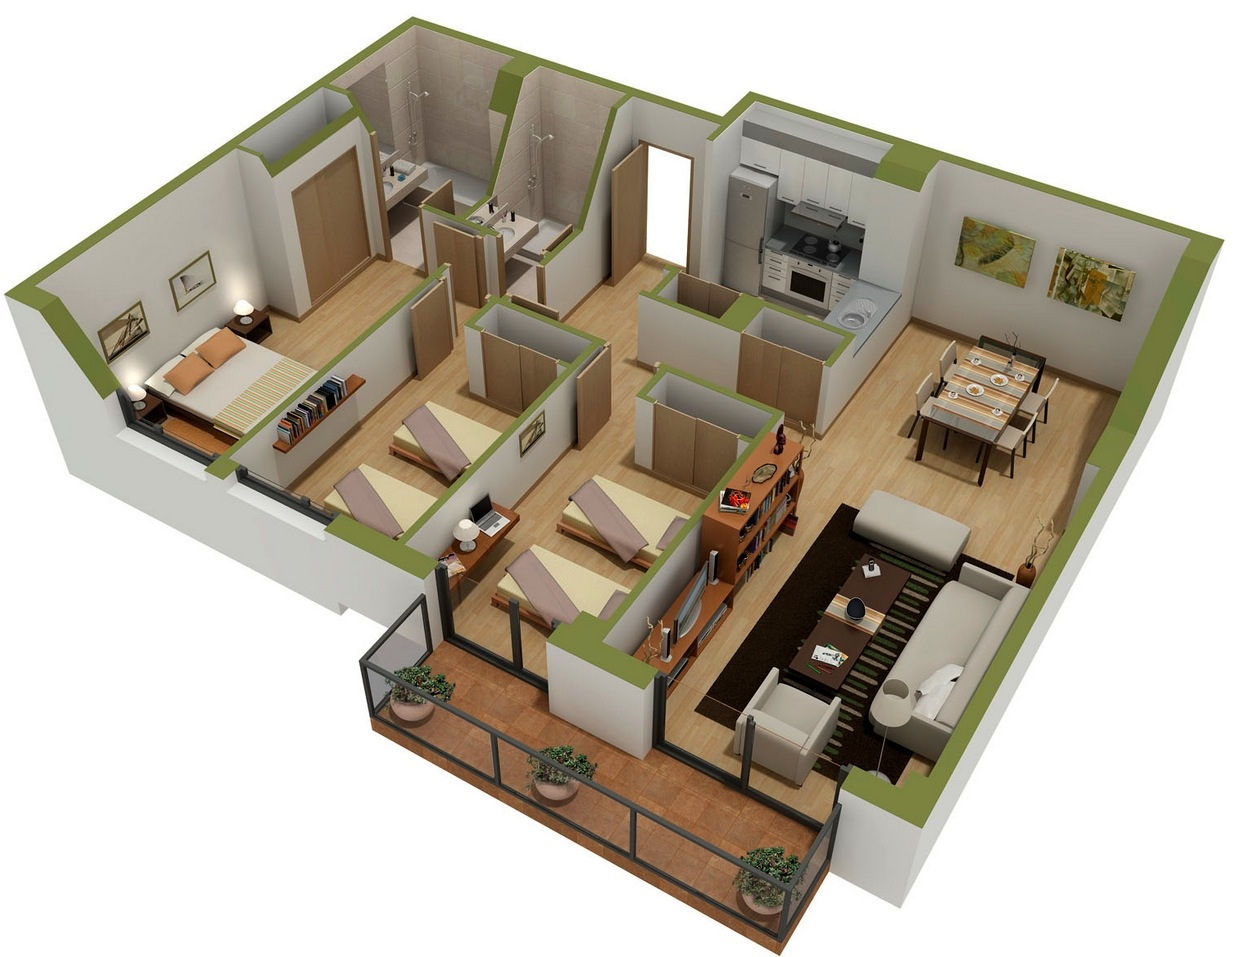 25 three bedroom house apartment floor plans Home design plans 3d